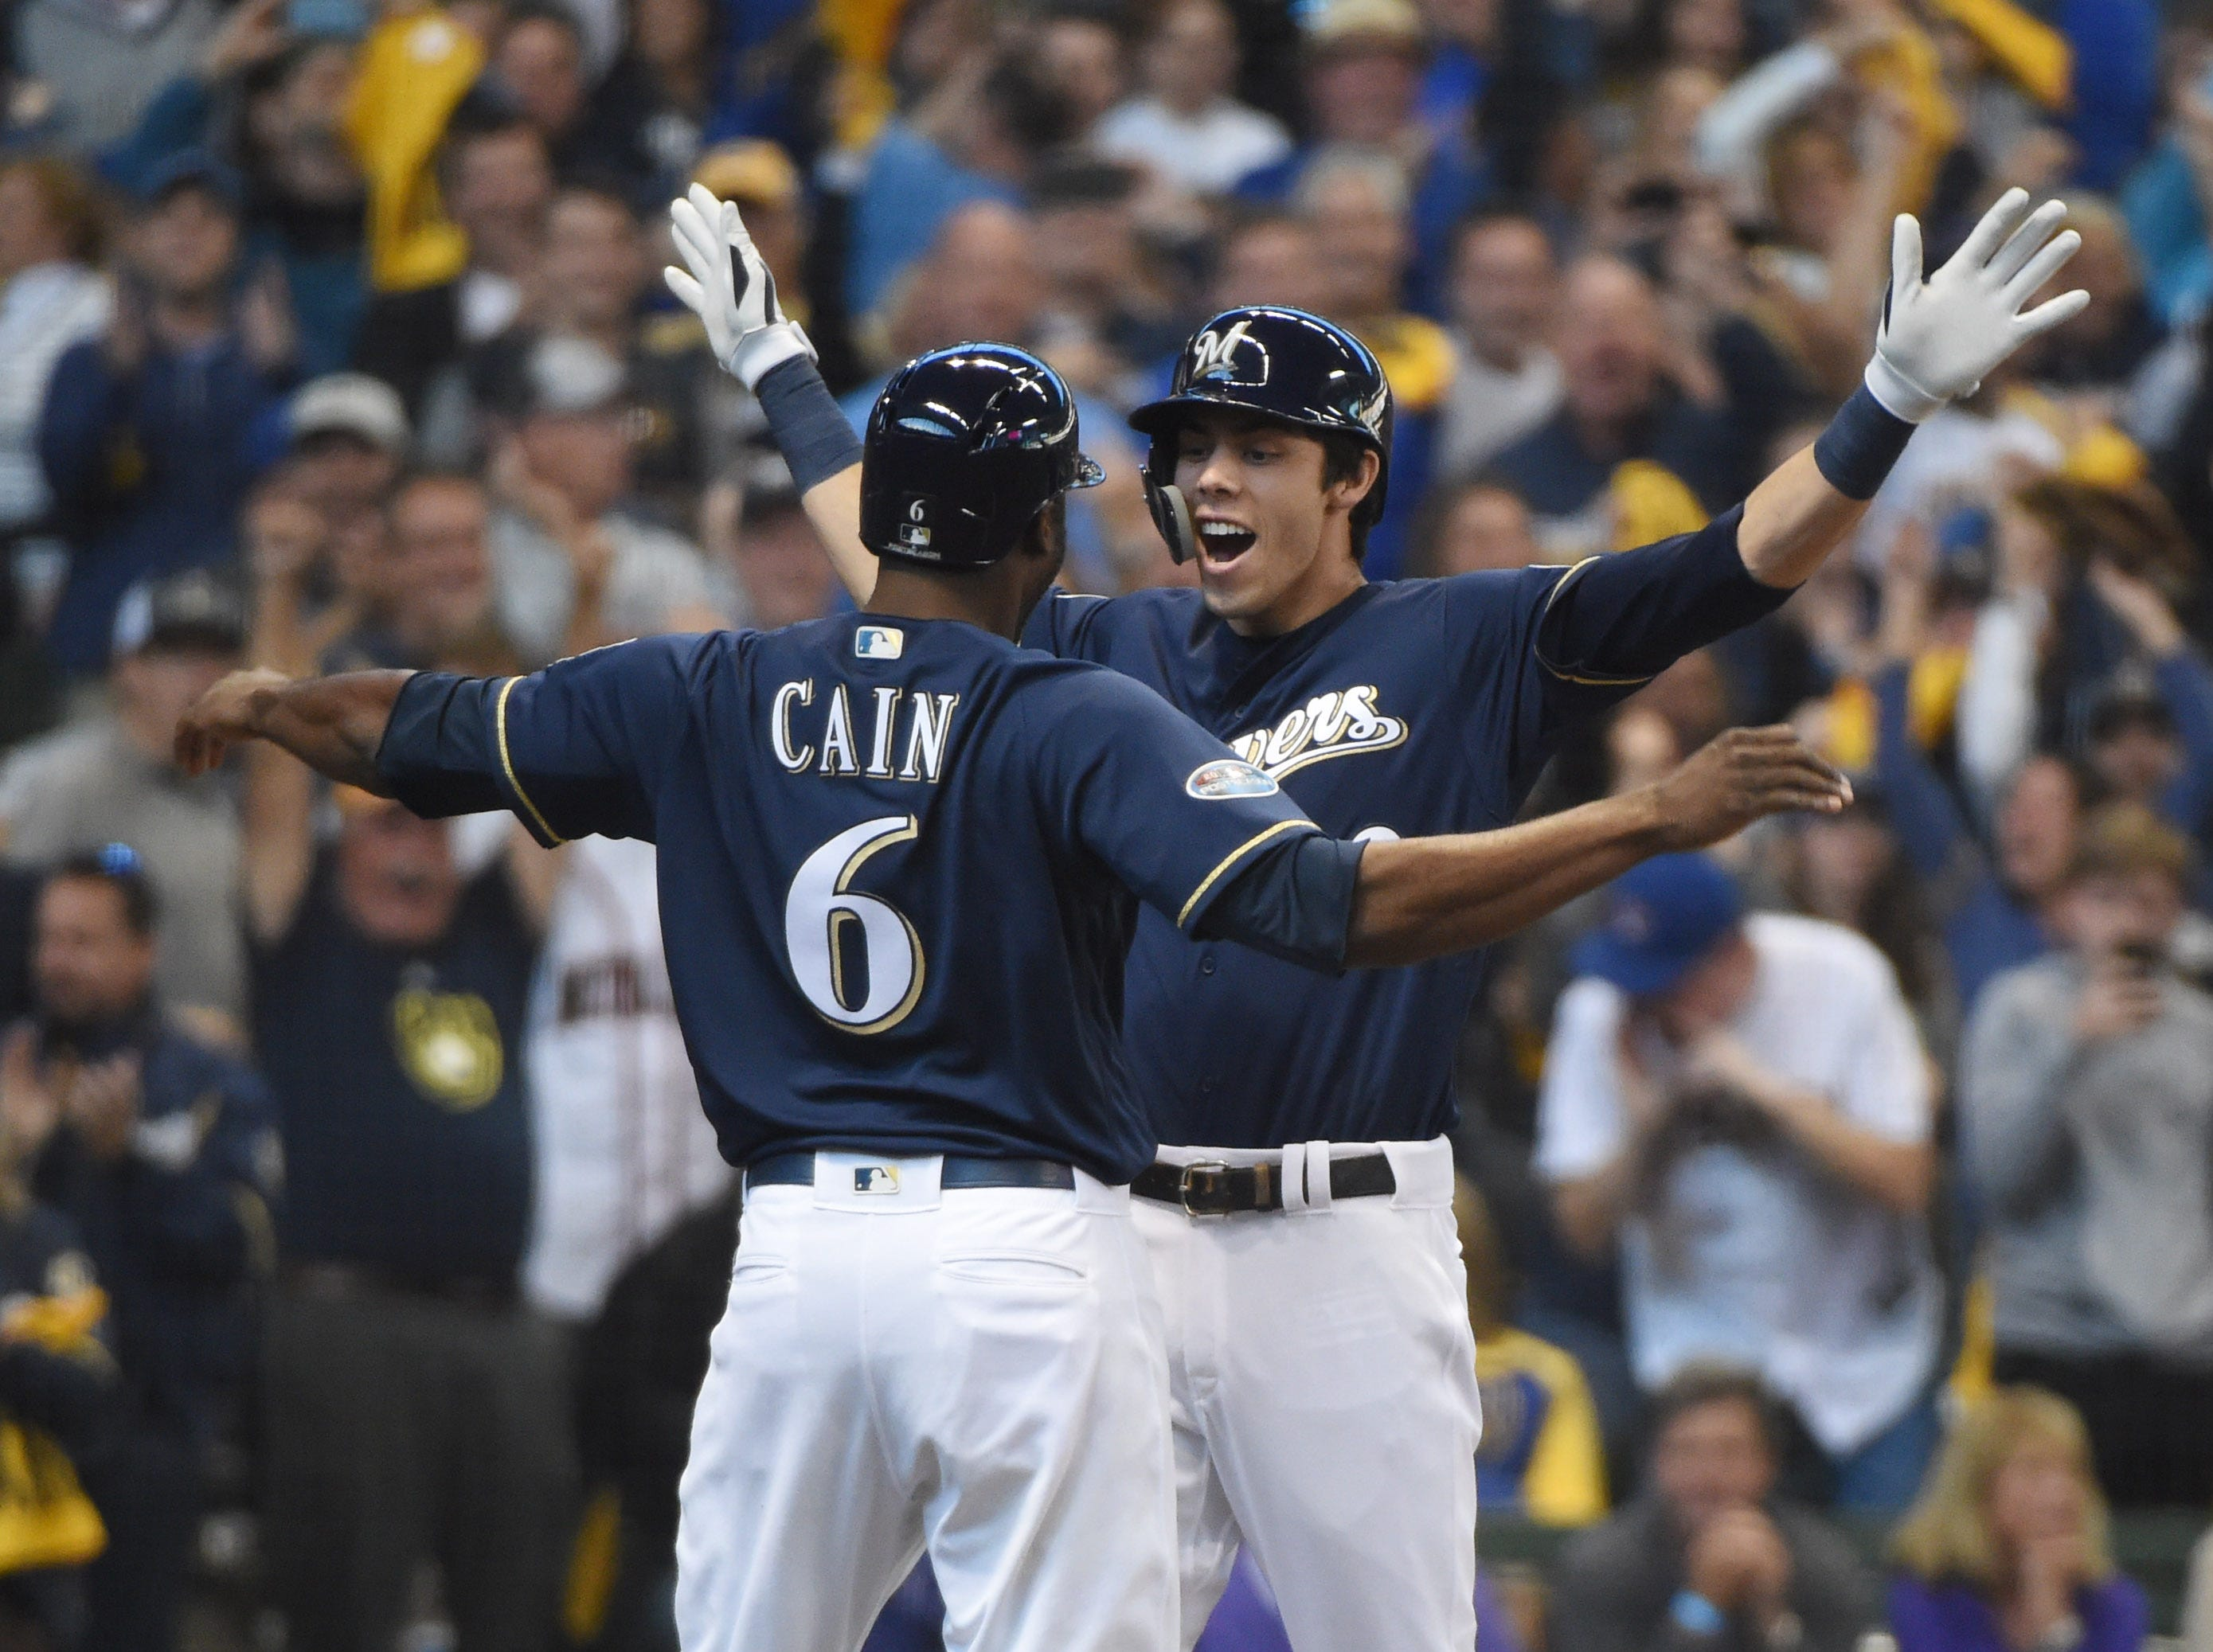 NLDS Game 1: Brewers outfielder Christian Yelich celebrates his home run with teammate Lorenzo Cain in the third inning.